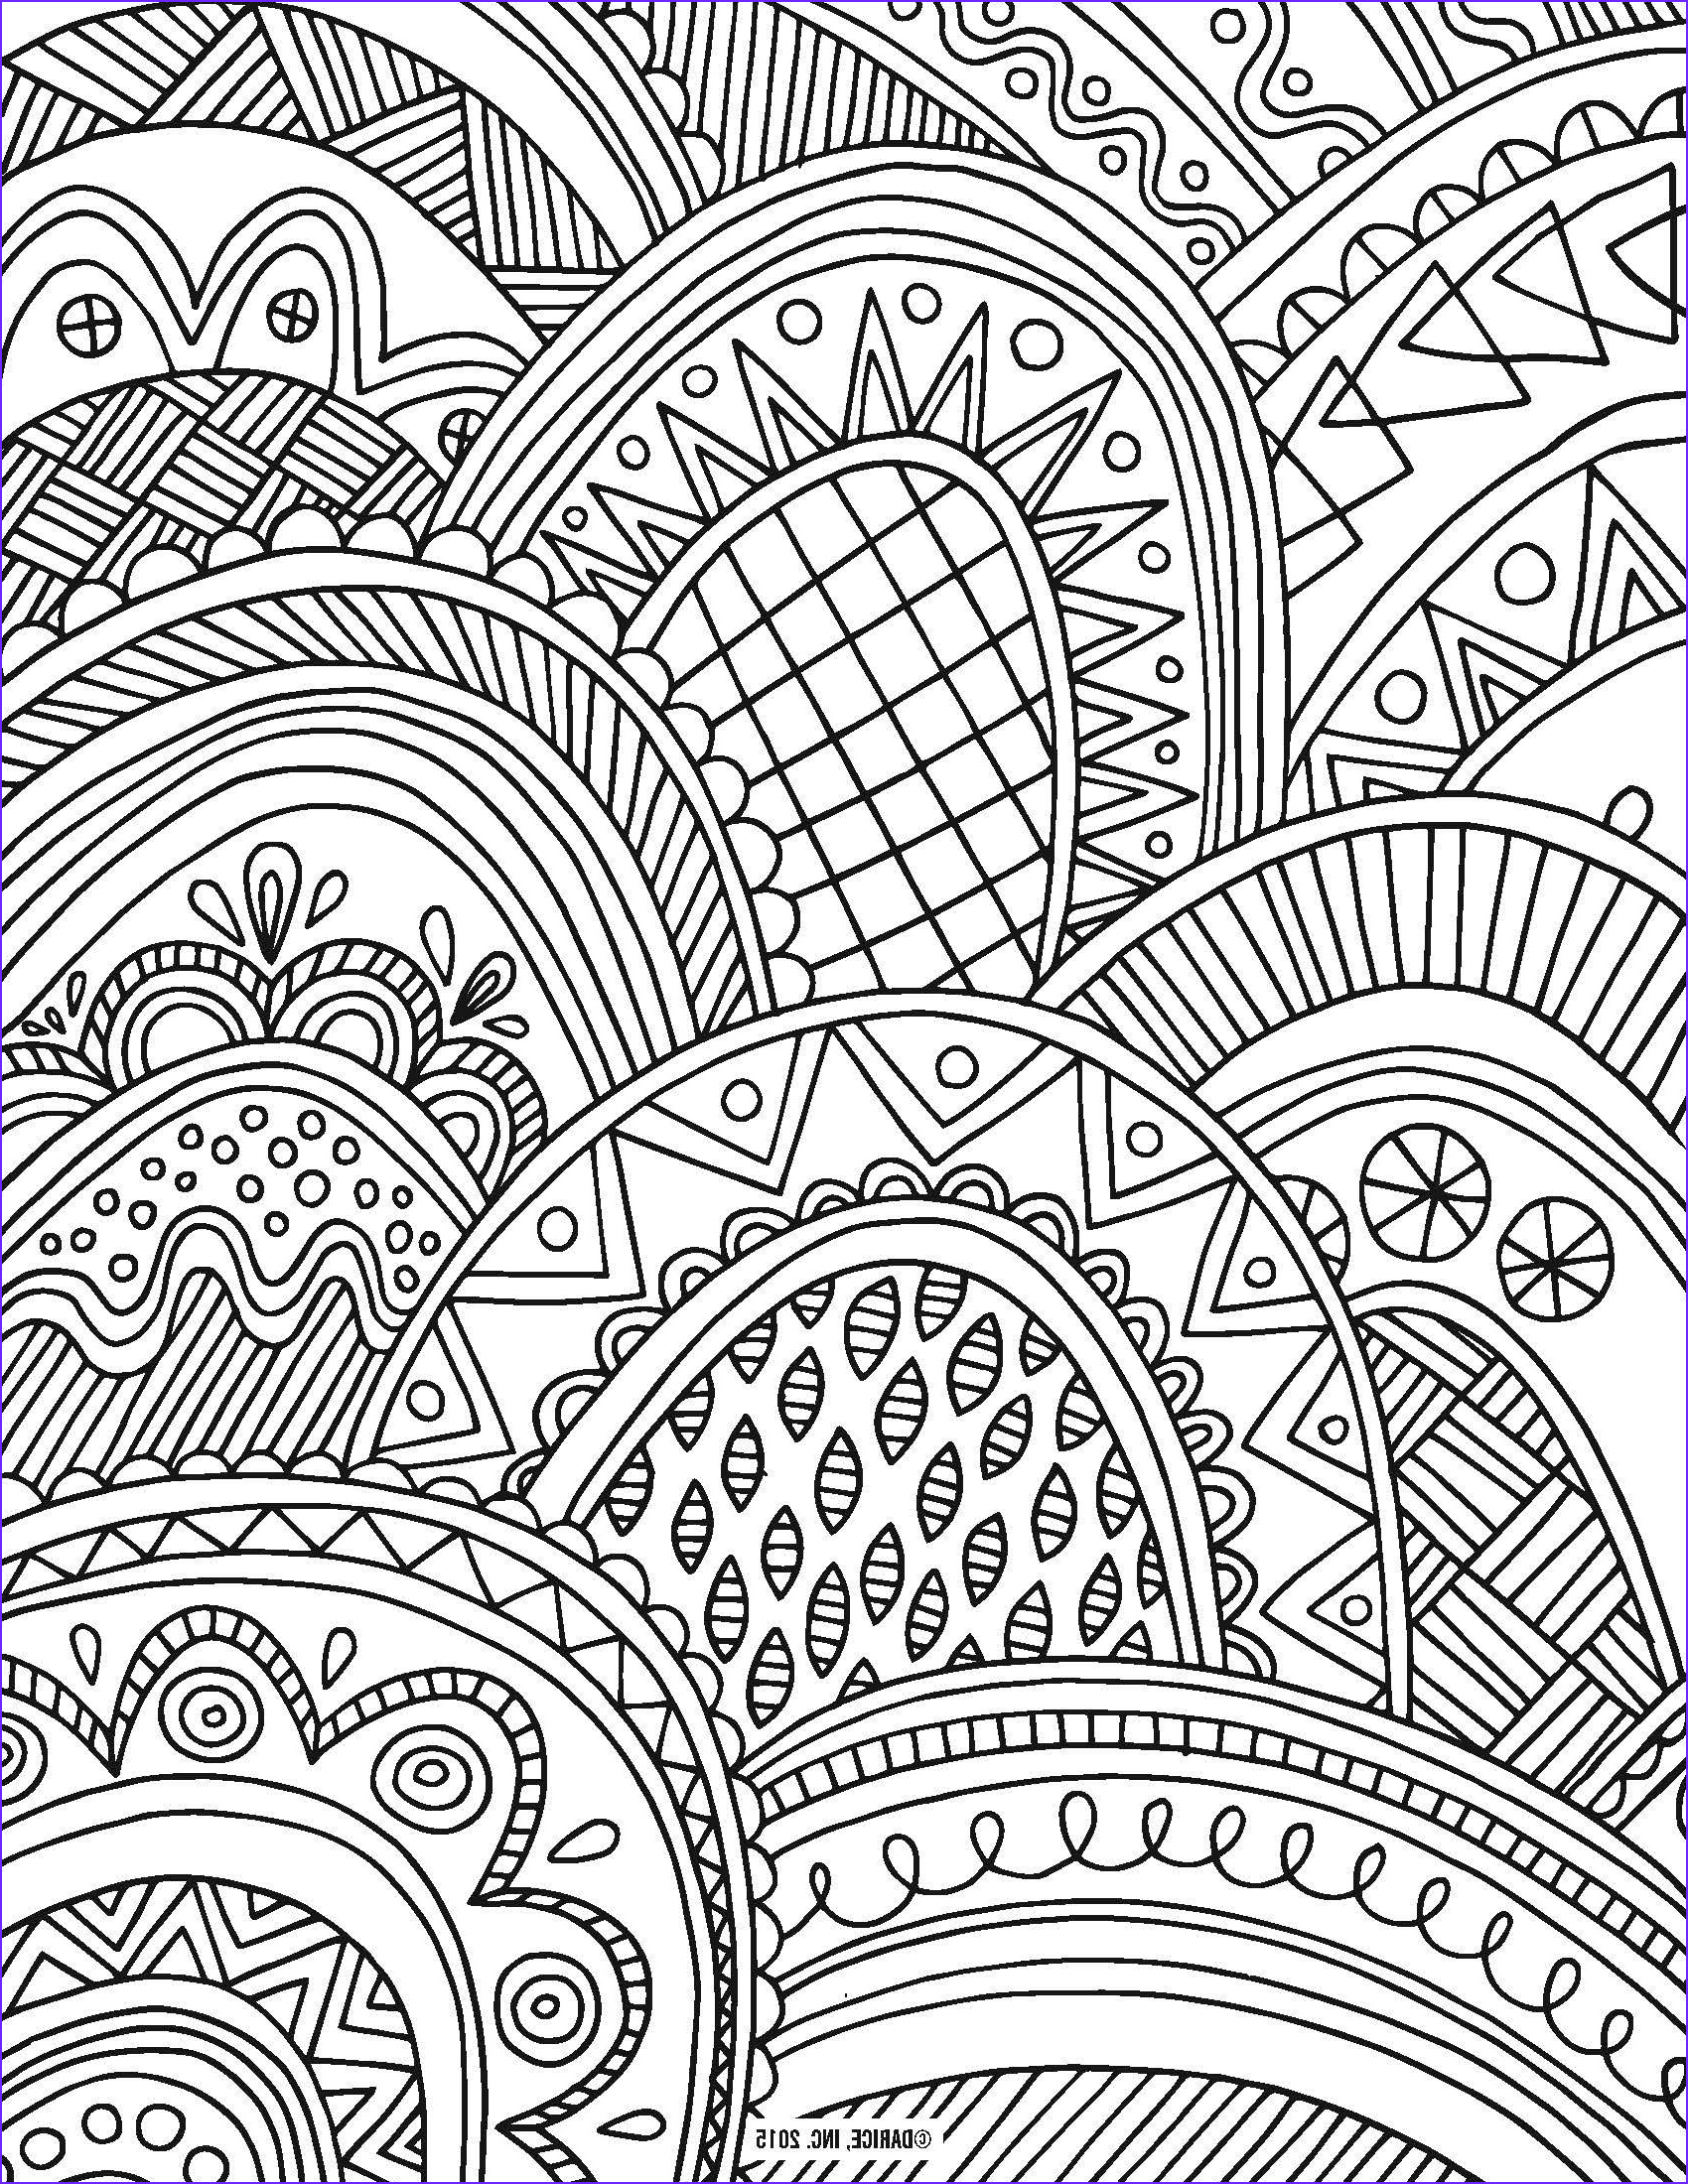 Printable Coloring Pages for Adults Abstract Elegant Photos Try Out the Adult Coloring Book Trend for Yourself with